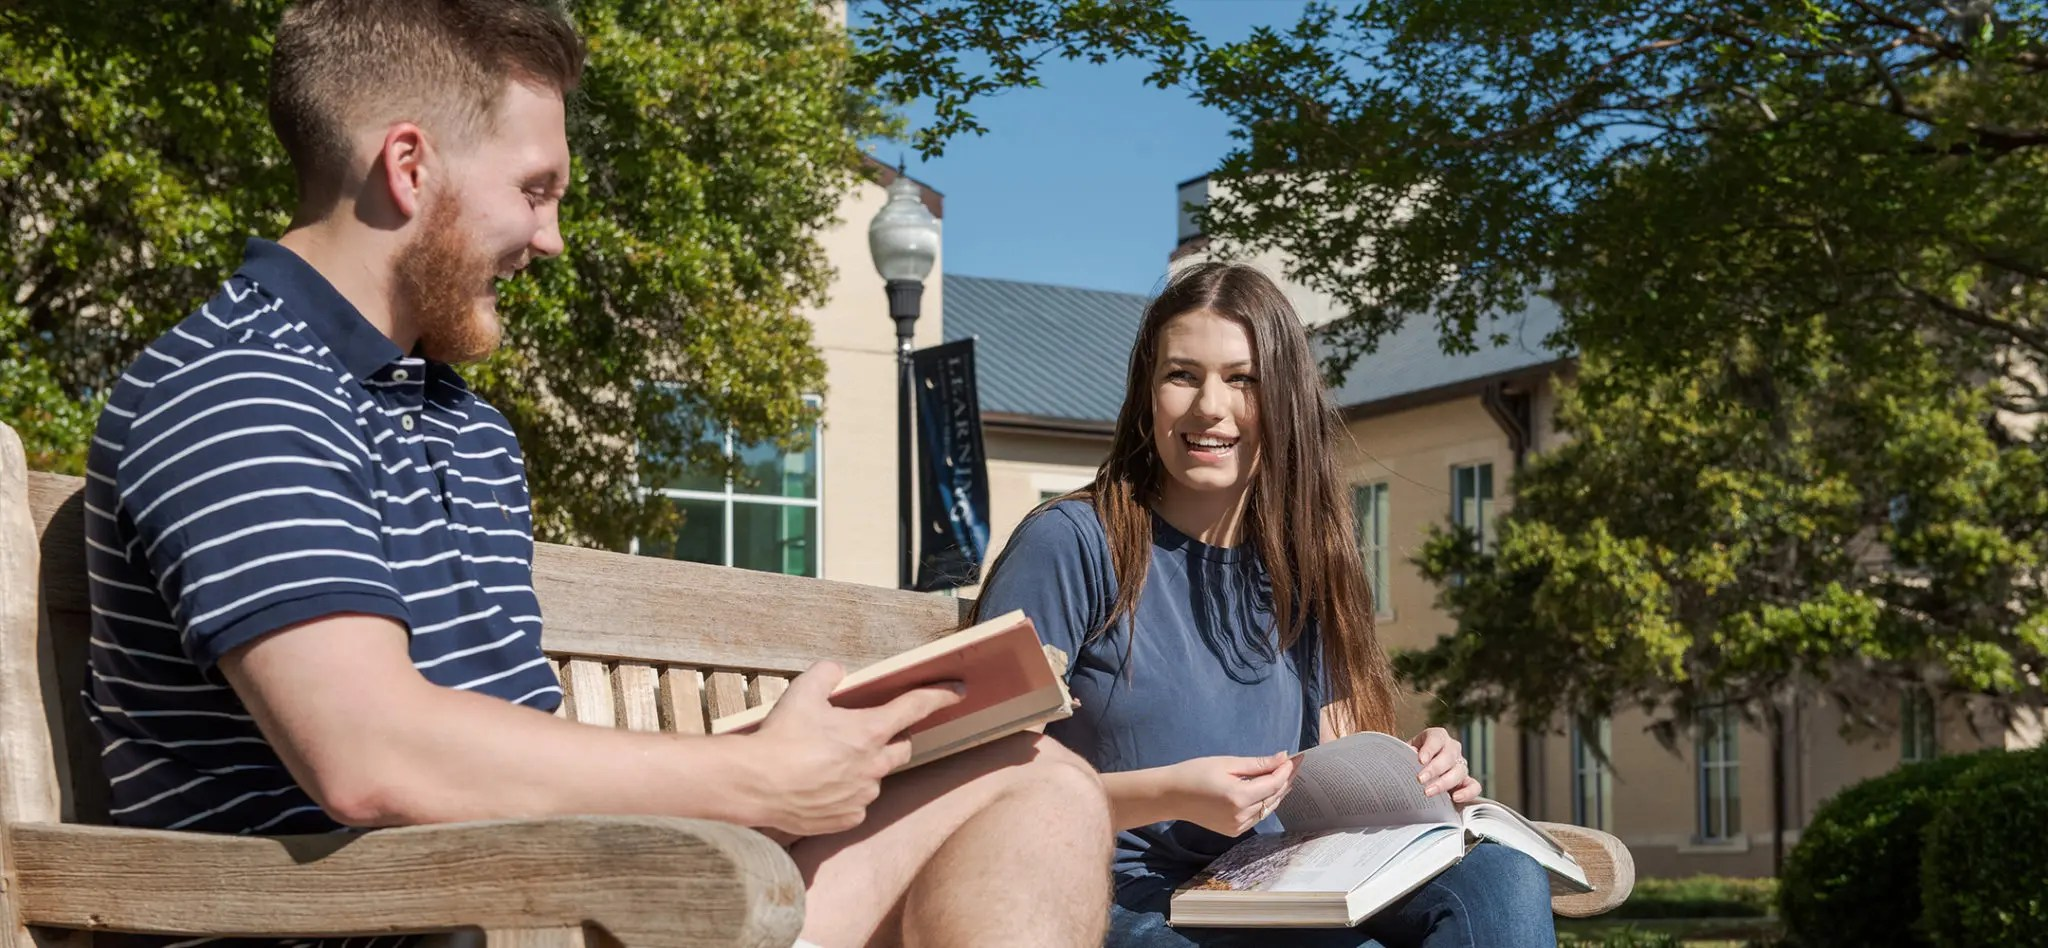 Two students sitting on a bench outside discussing their classwork with books in hand.